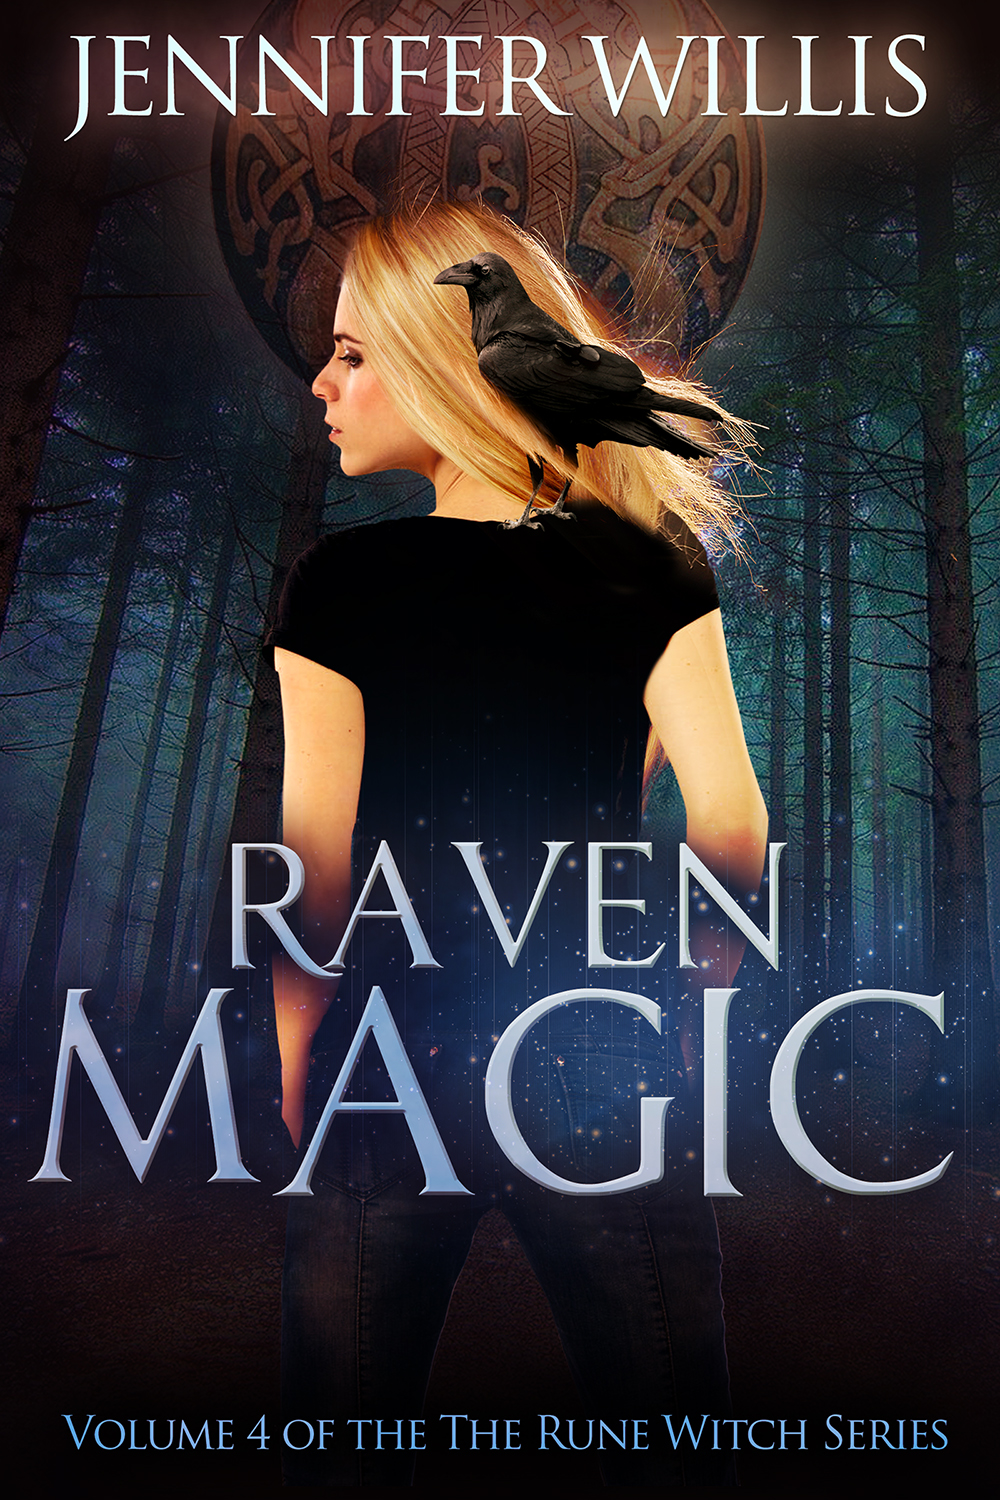 Raven Magic (Rune Witch, Volume 4) by Jennifer Willis